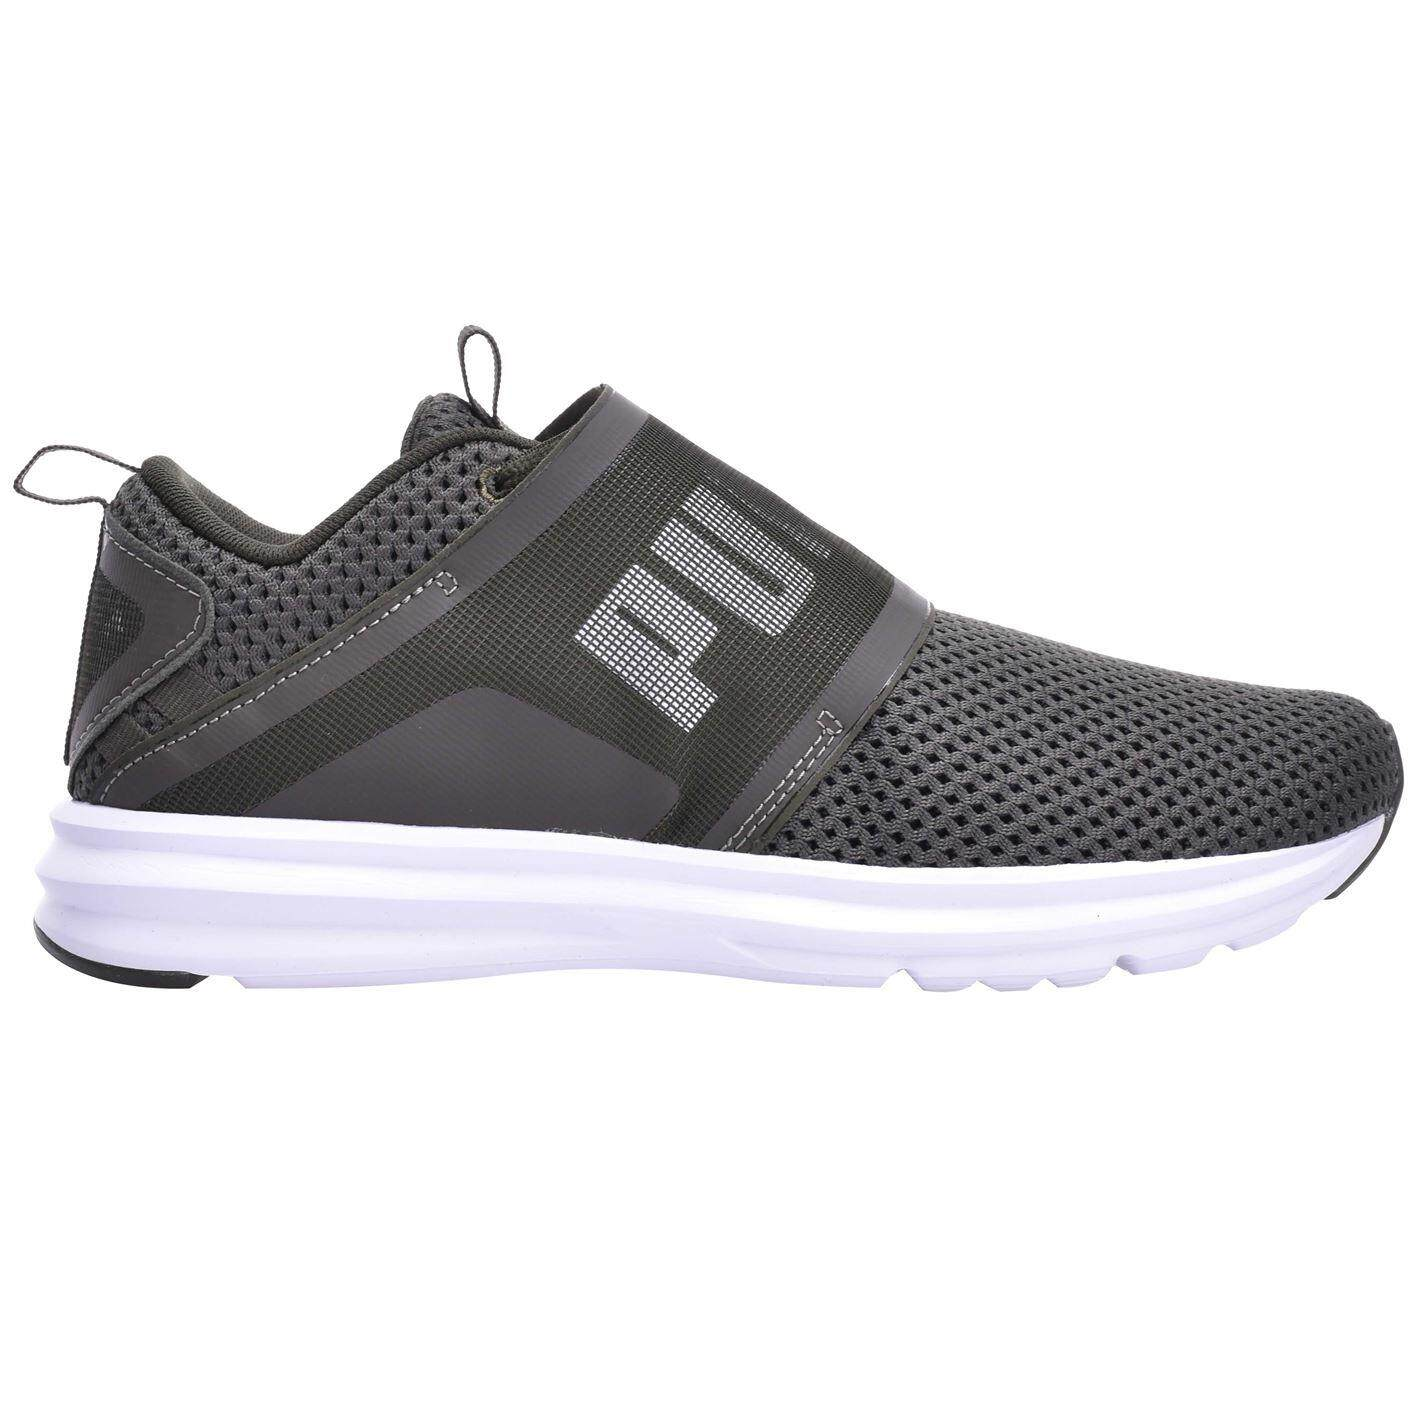 43c75fc50 Puma Men s Sports Shoes - Running Shoes price in Malaysia - Best ...